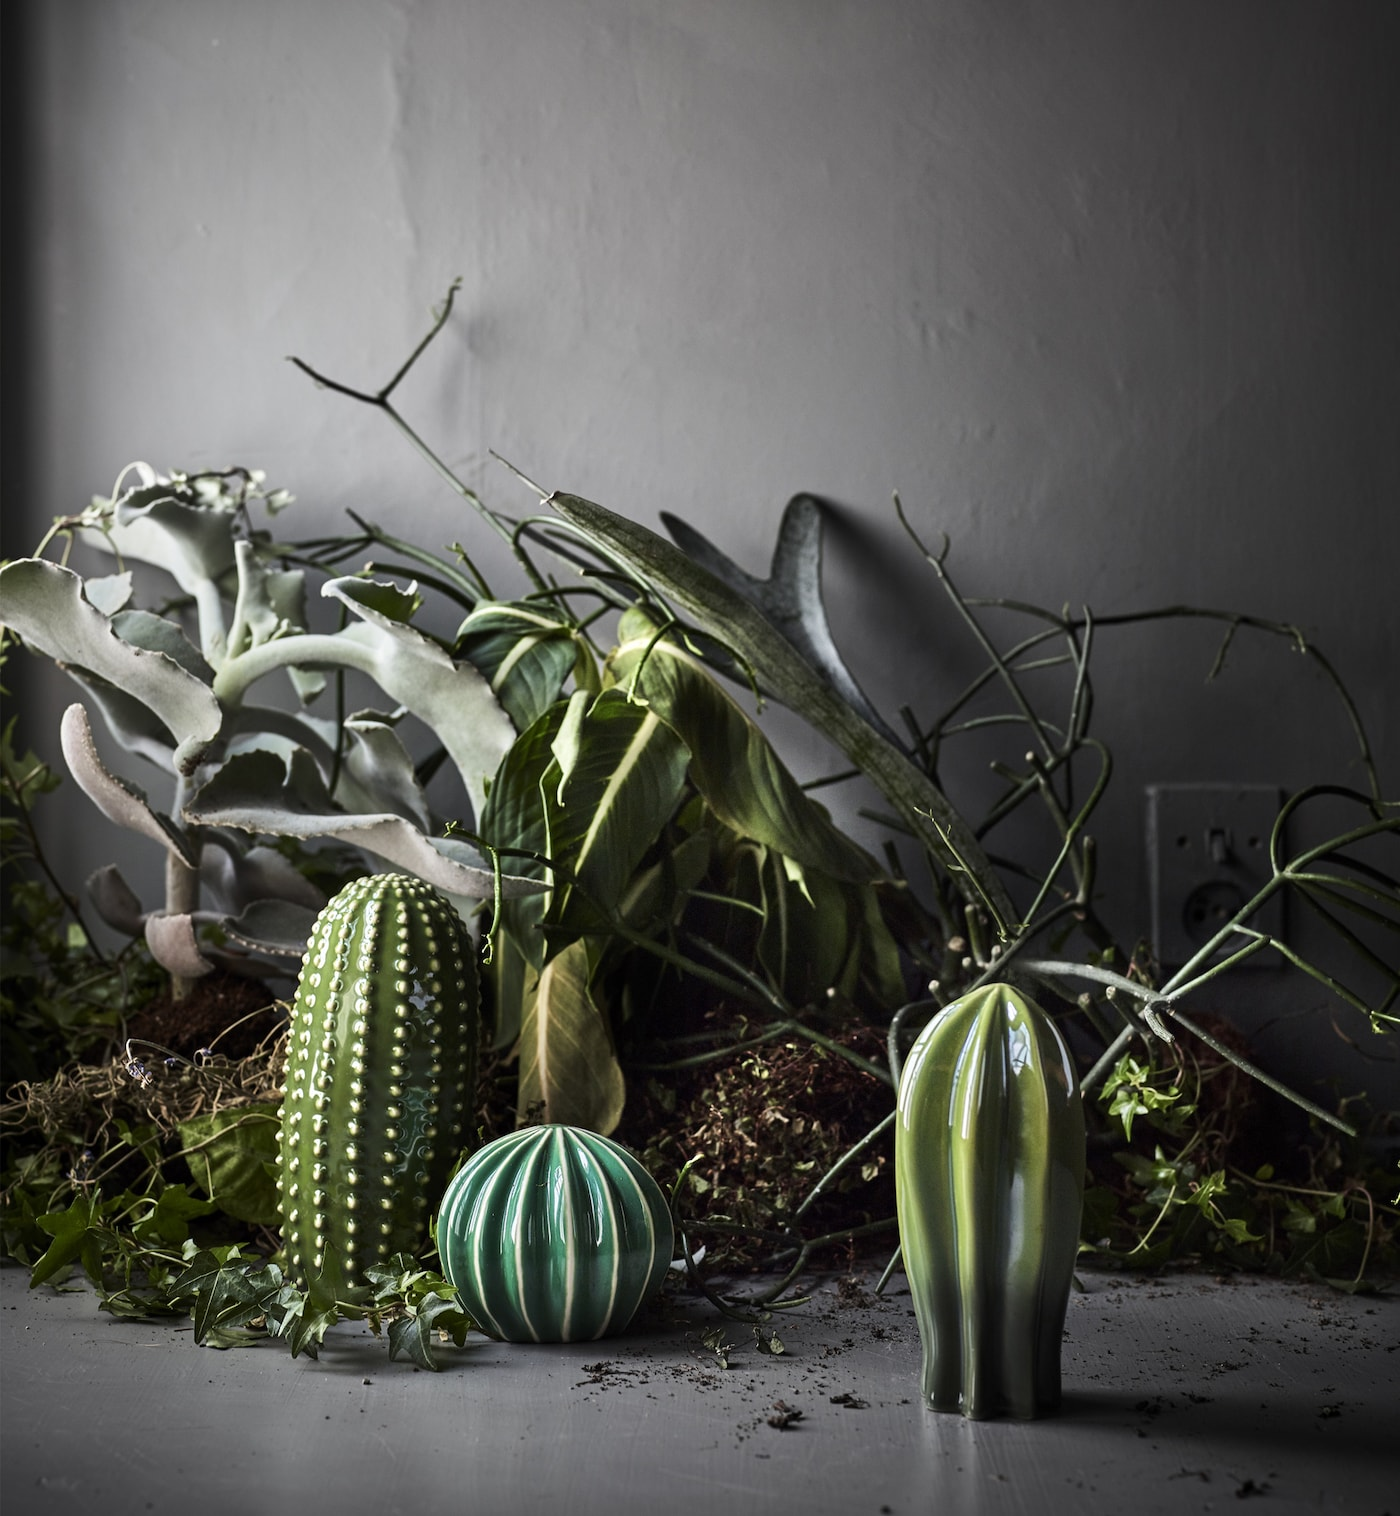 A set of three ceramic cactuses in different shapes and sizes, shown together with real green plants.